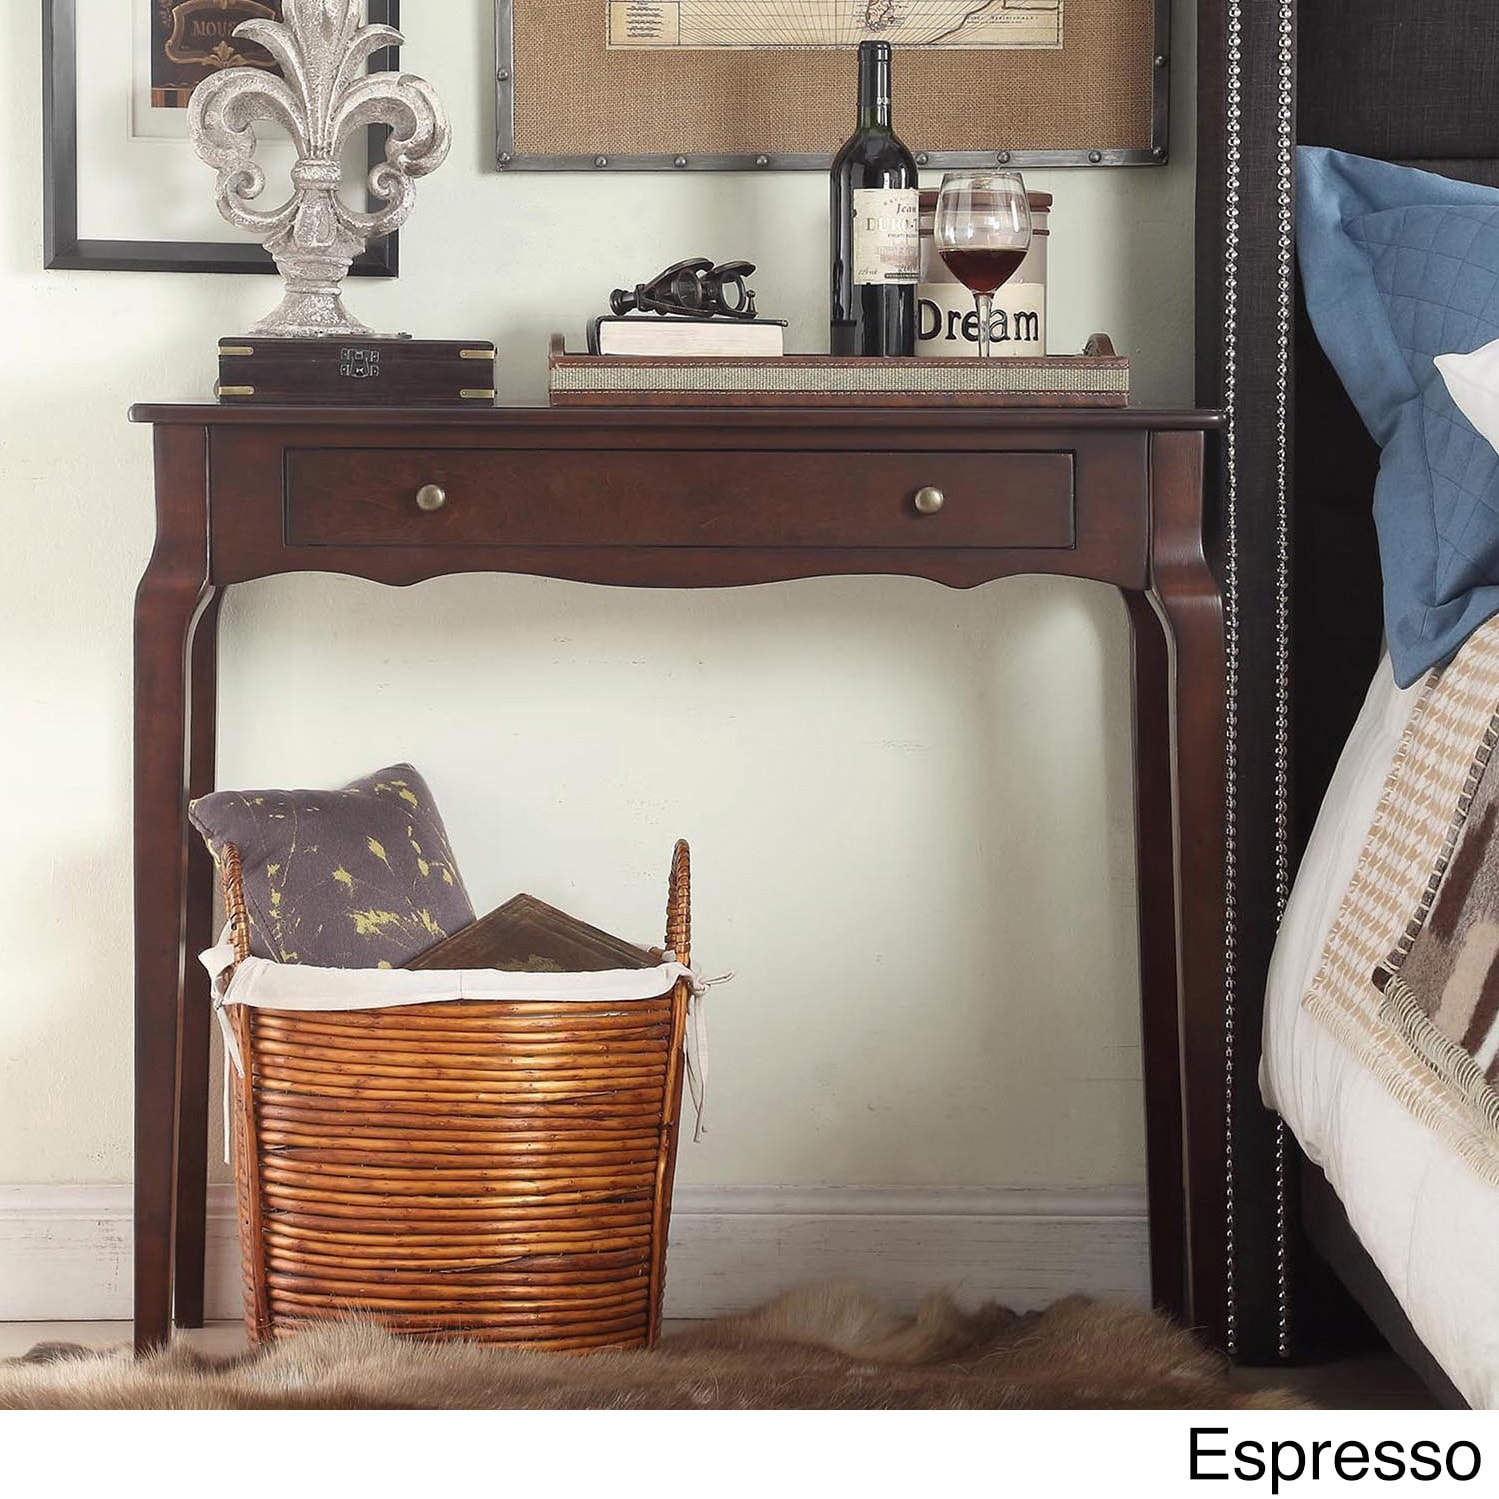 Stupendous Details About Daniella 1 Drawer Wood Accent Console Sofa Table By Inspire Unemploymentrelief Wooden Chair Designs For Living Room Unemploymentrelieforg